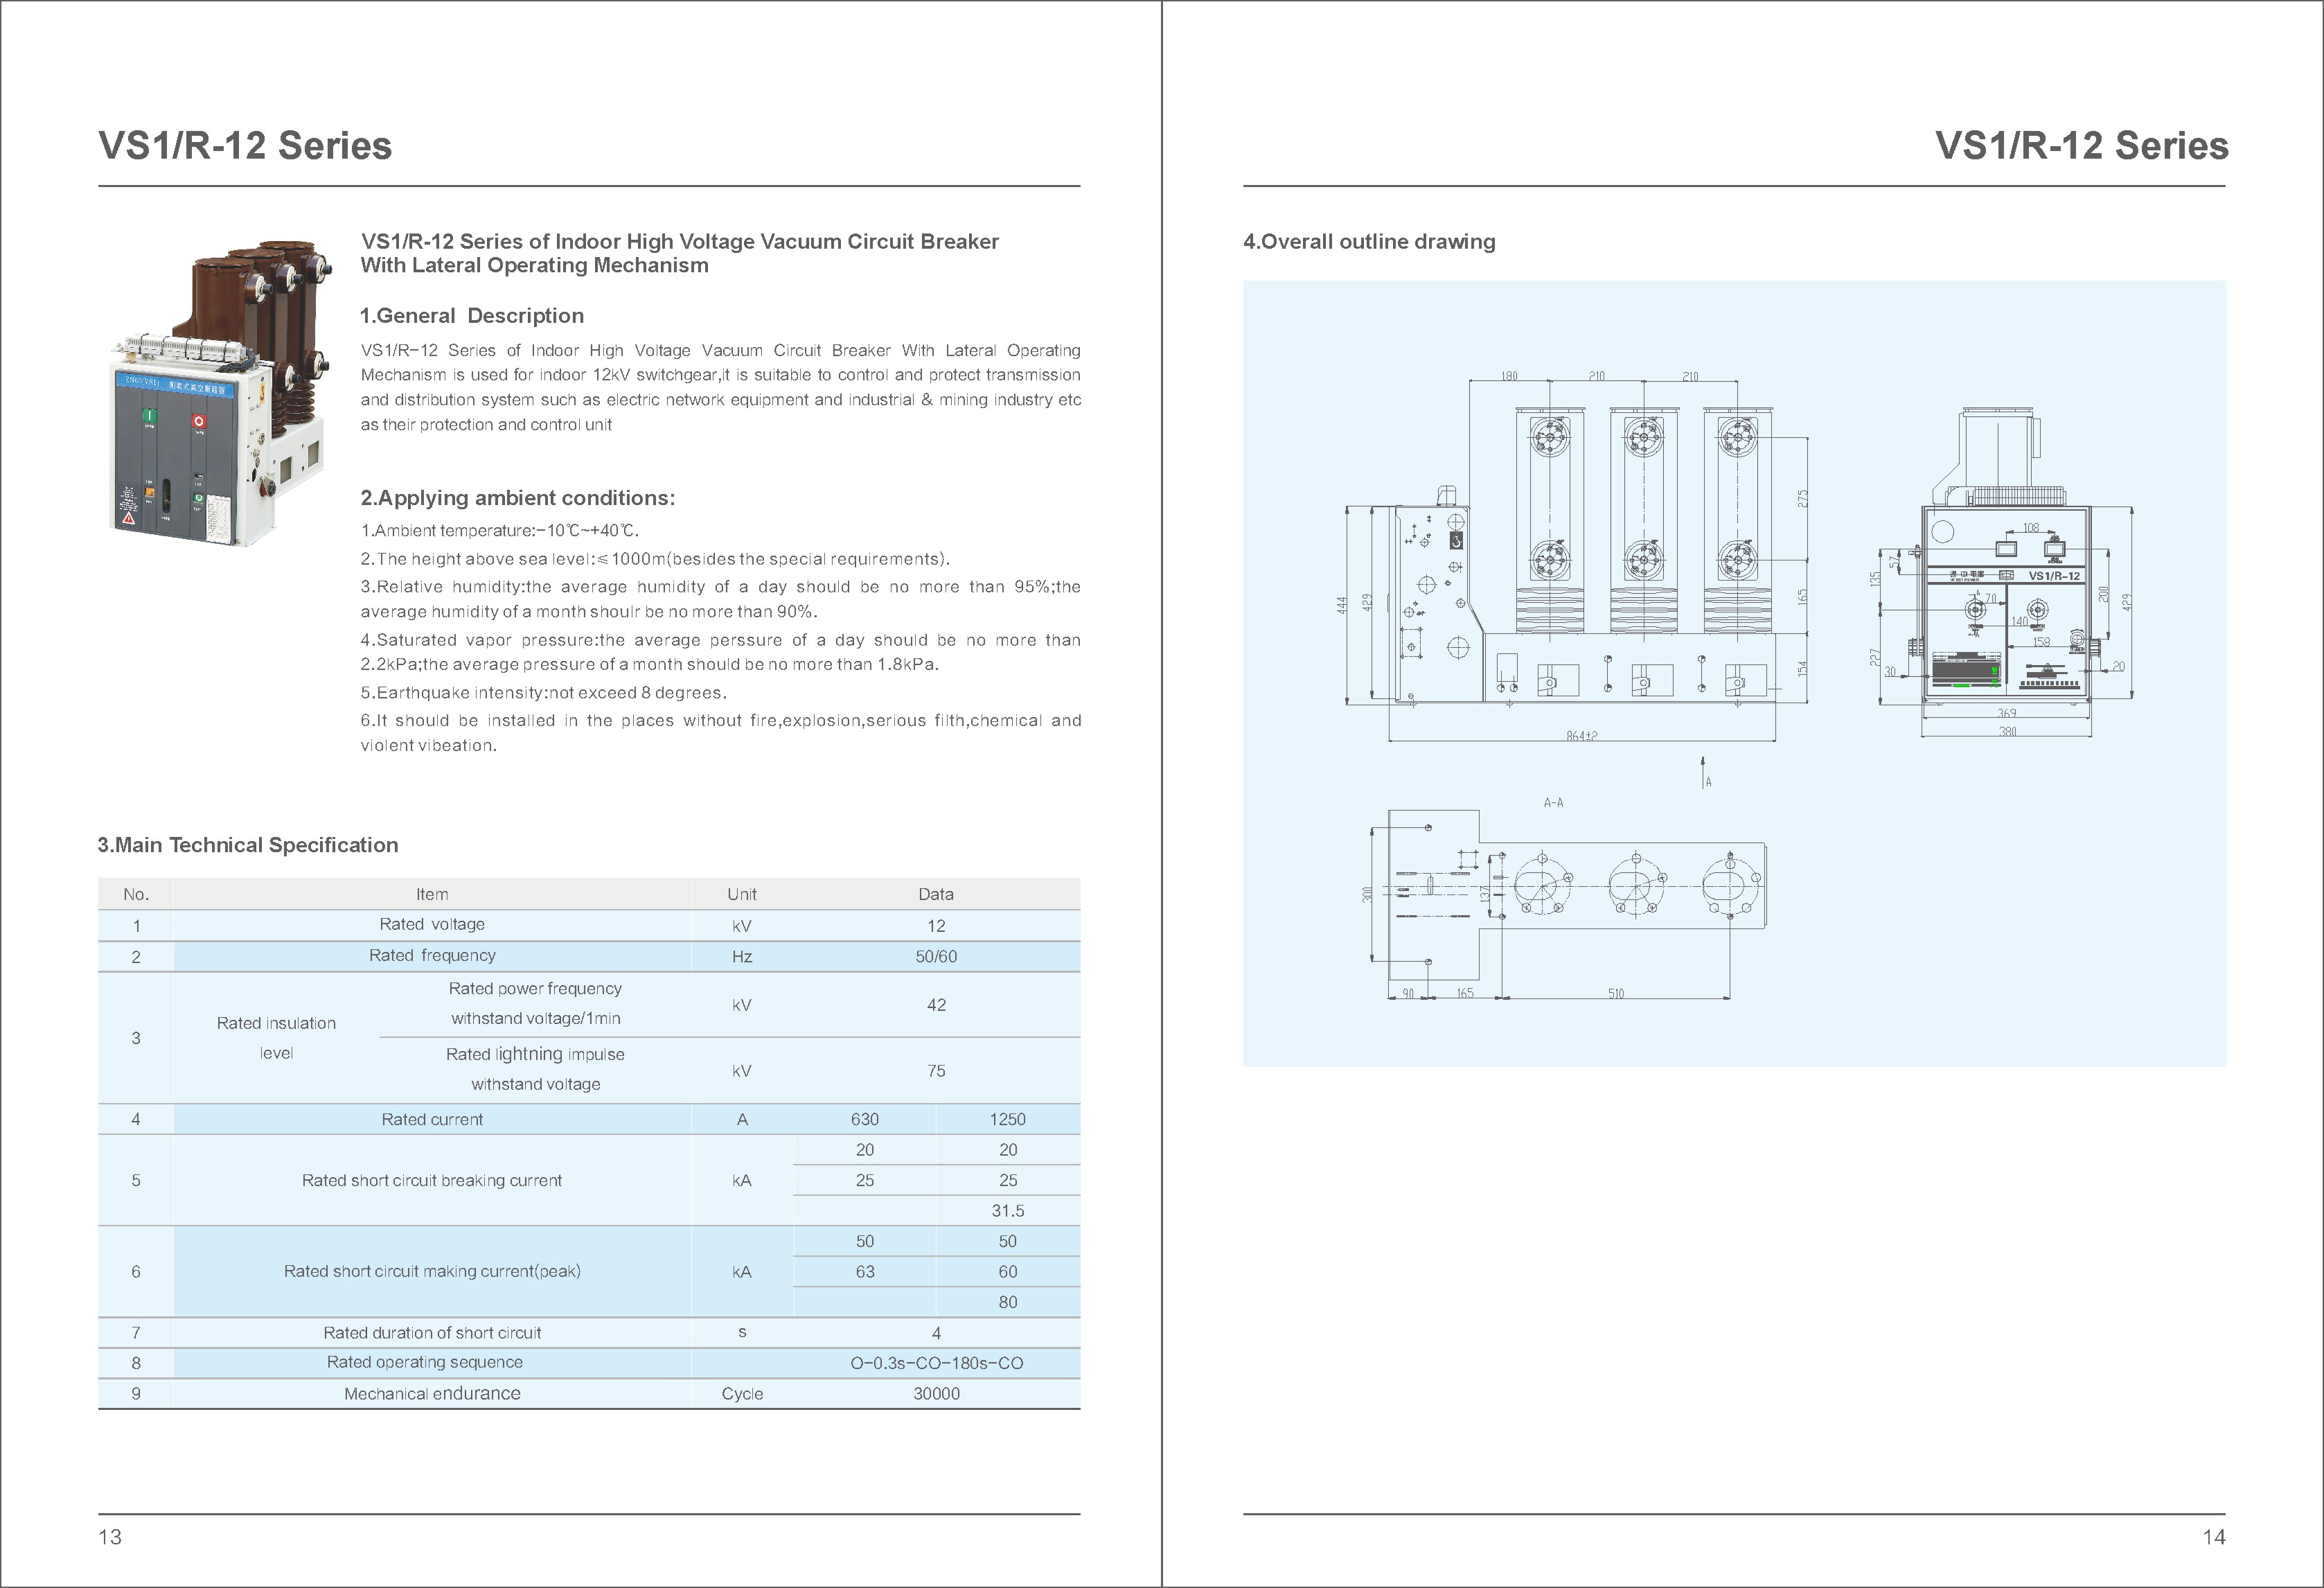 Lateral type VCB Technical Specification and Outline Drawing